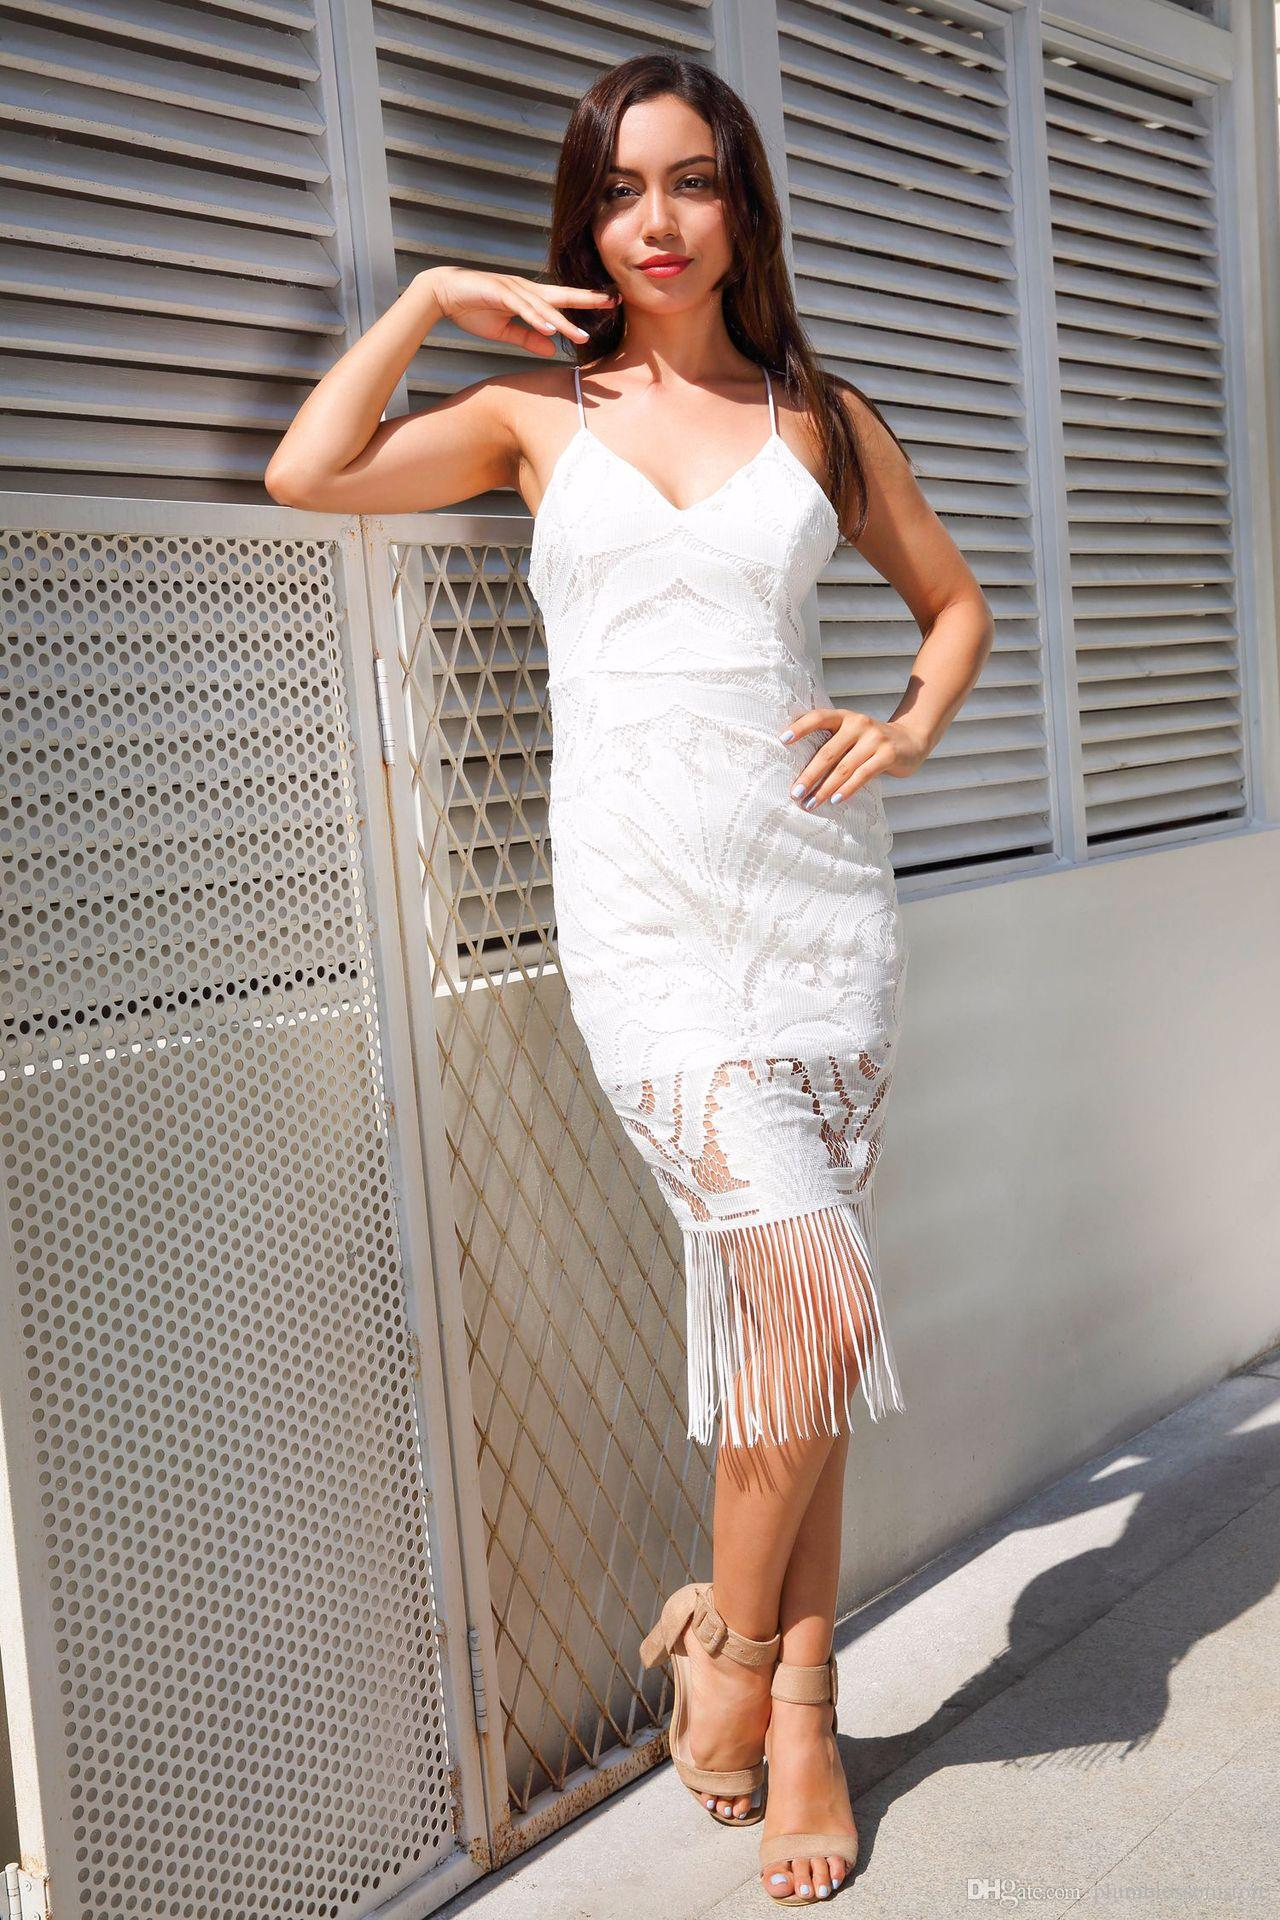 Backless V Neck Summer Dress Women Zipper White Lace Crochet Bodycon Dress  Hollow Out Sexy Party Evening Club Dresses Tassels Vestidos New Going Out  Dresses ... 7de27aaa1